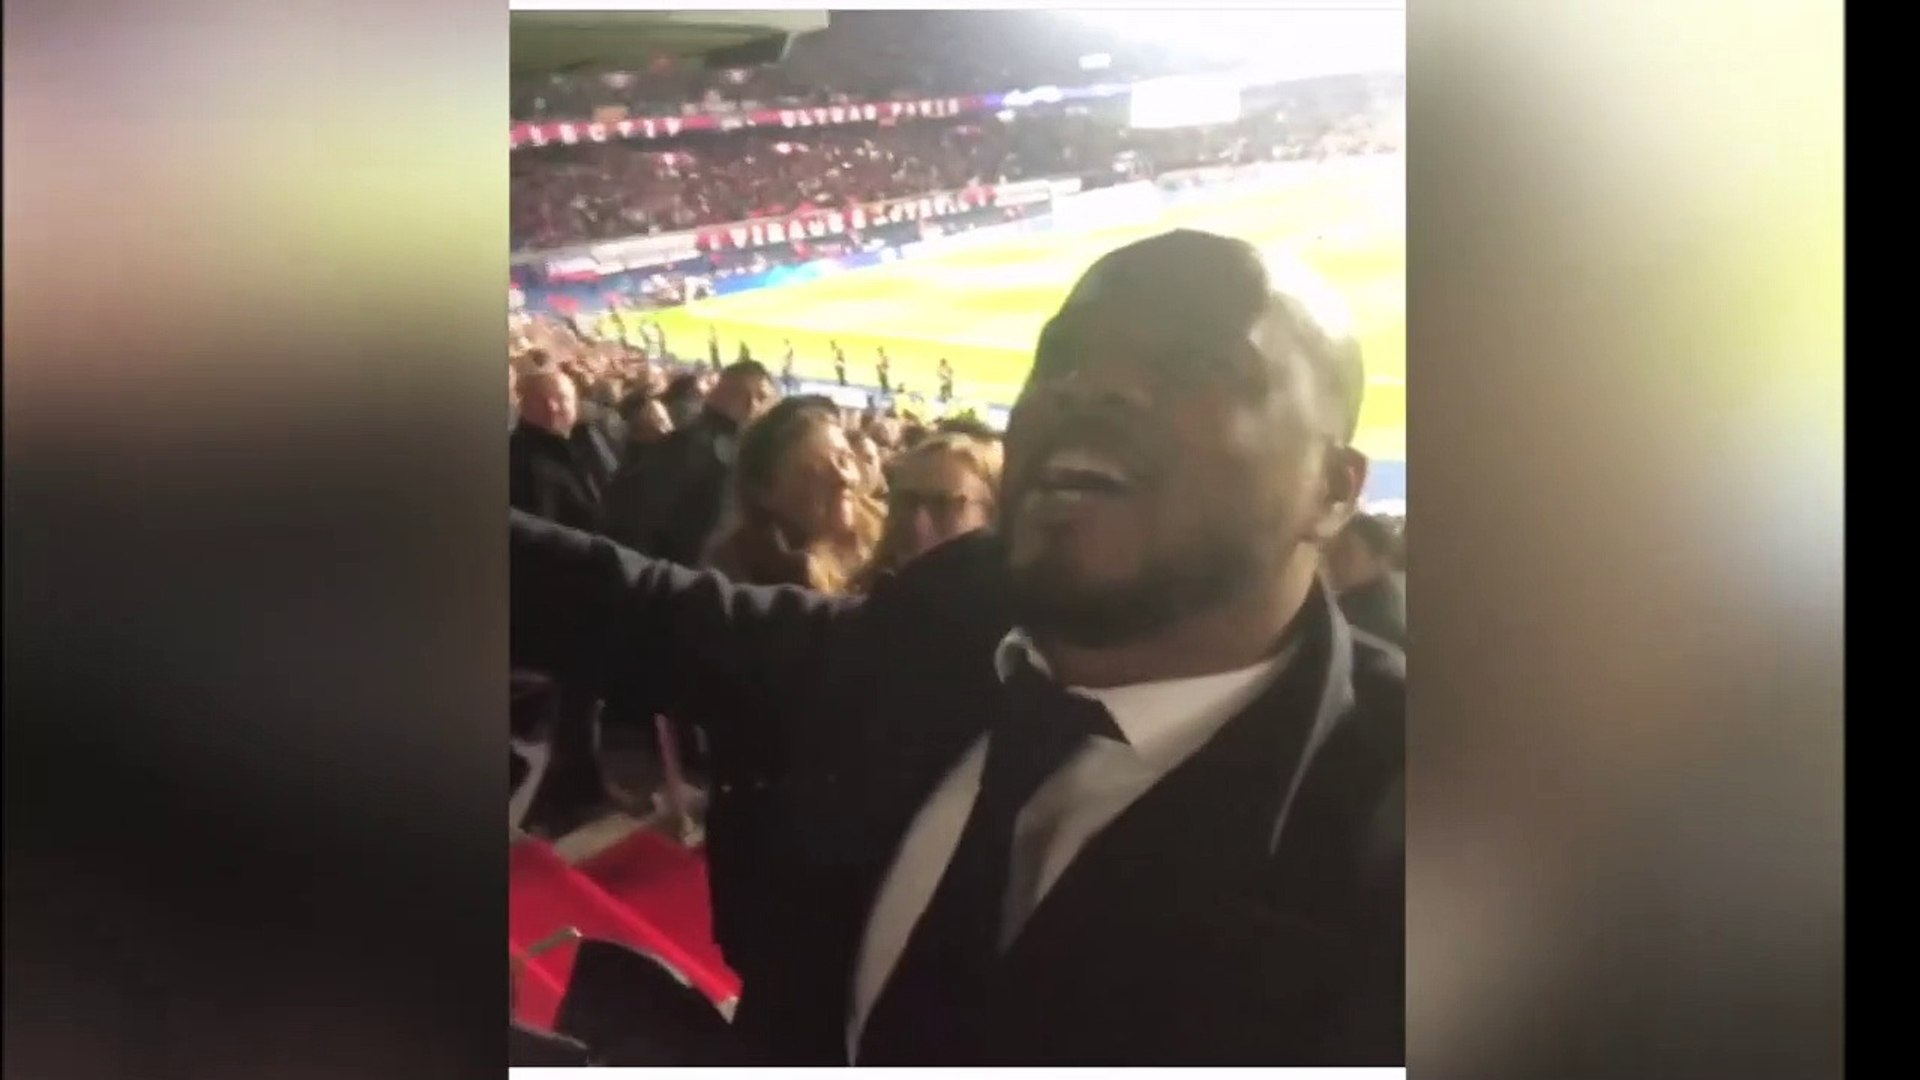 ICI C'EST MANCHESTER POGBA, CANTONA &  EVRA AMAZING REACTION IN THE STADIUM AT THE END OF P